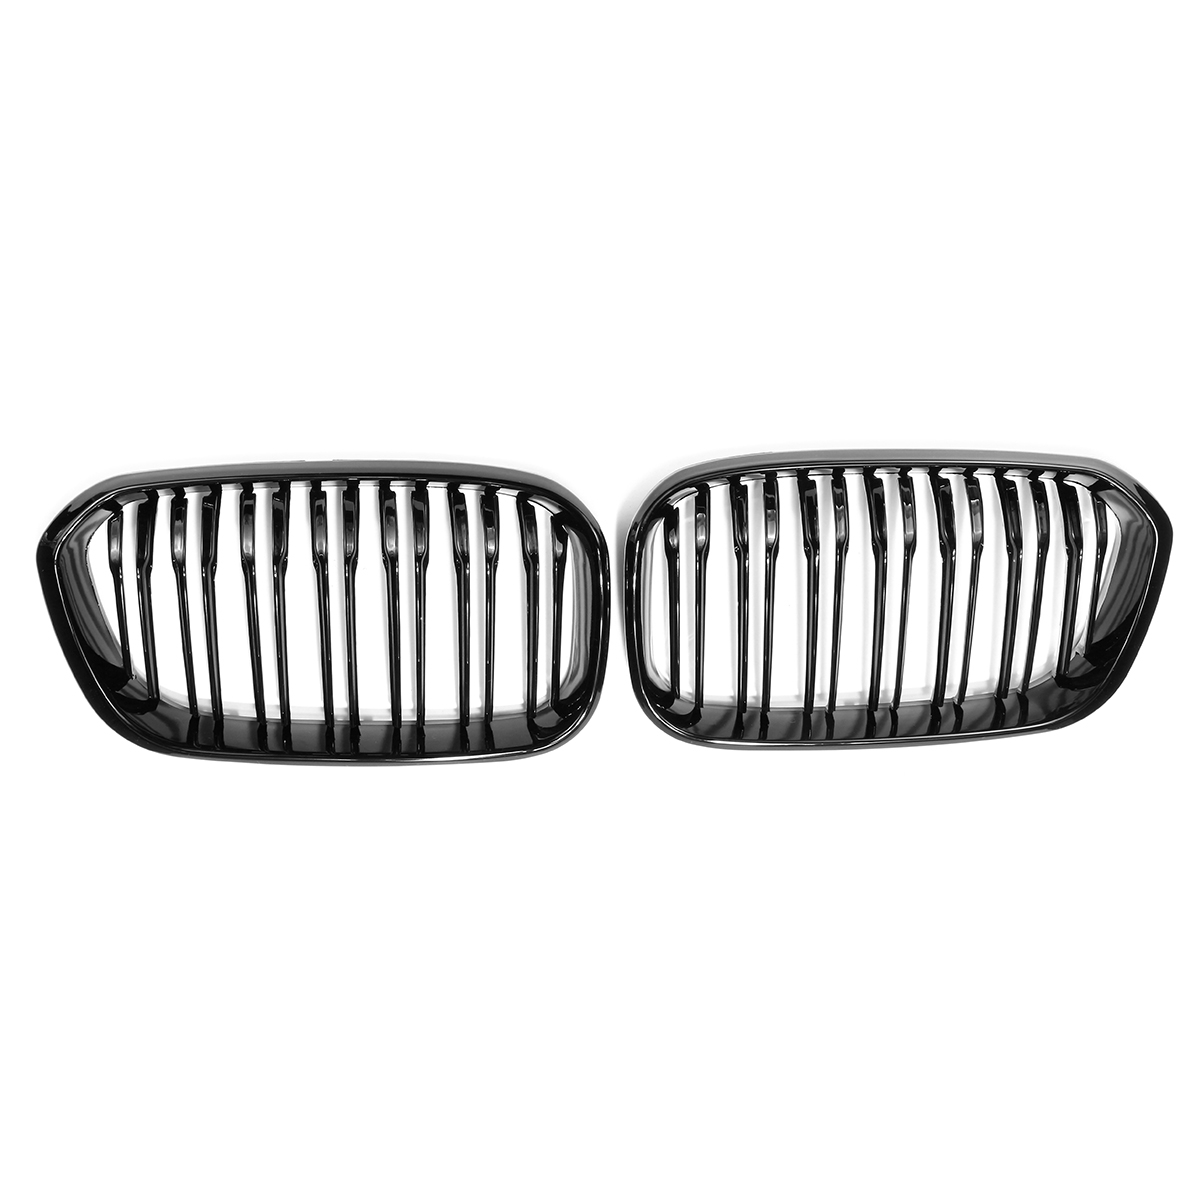 New Pair ABS Gloss Black Front Bumper Kidney Grill Grille Car Decorative Accessory For BMW F20 F21 1 Series 2015 2016 f20 abs grill front bumper hood grille for bmw f21 2010 2014 page 8